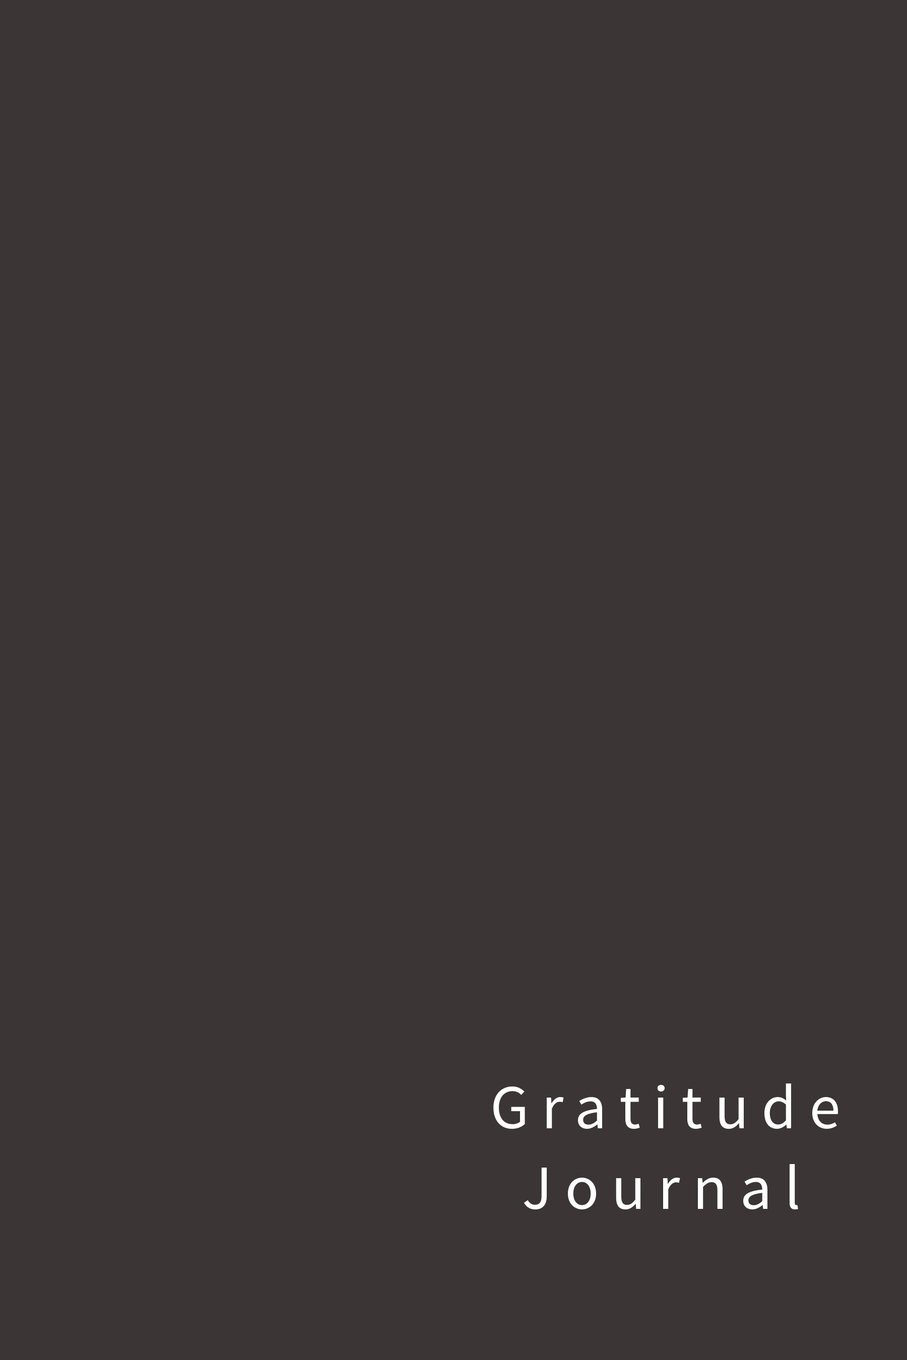 gratitude journal 110 pages softcover 6 x 9 inches silver